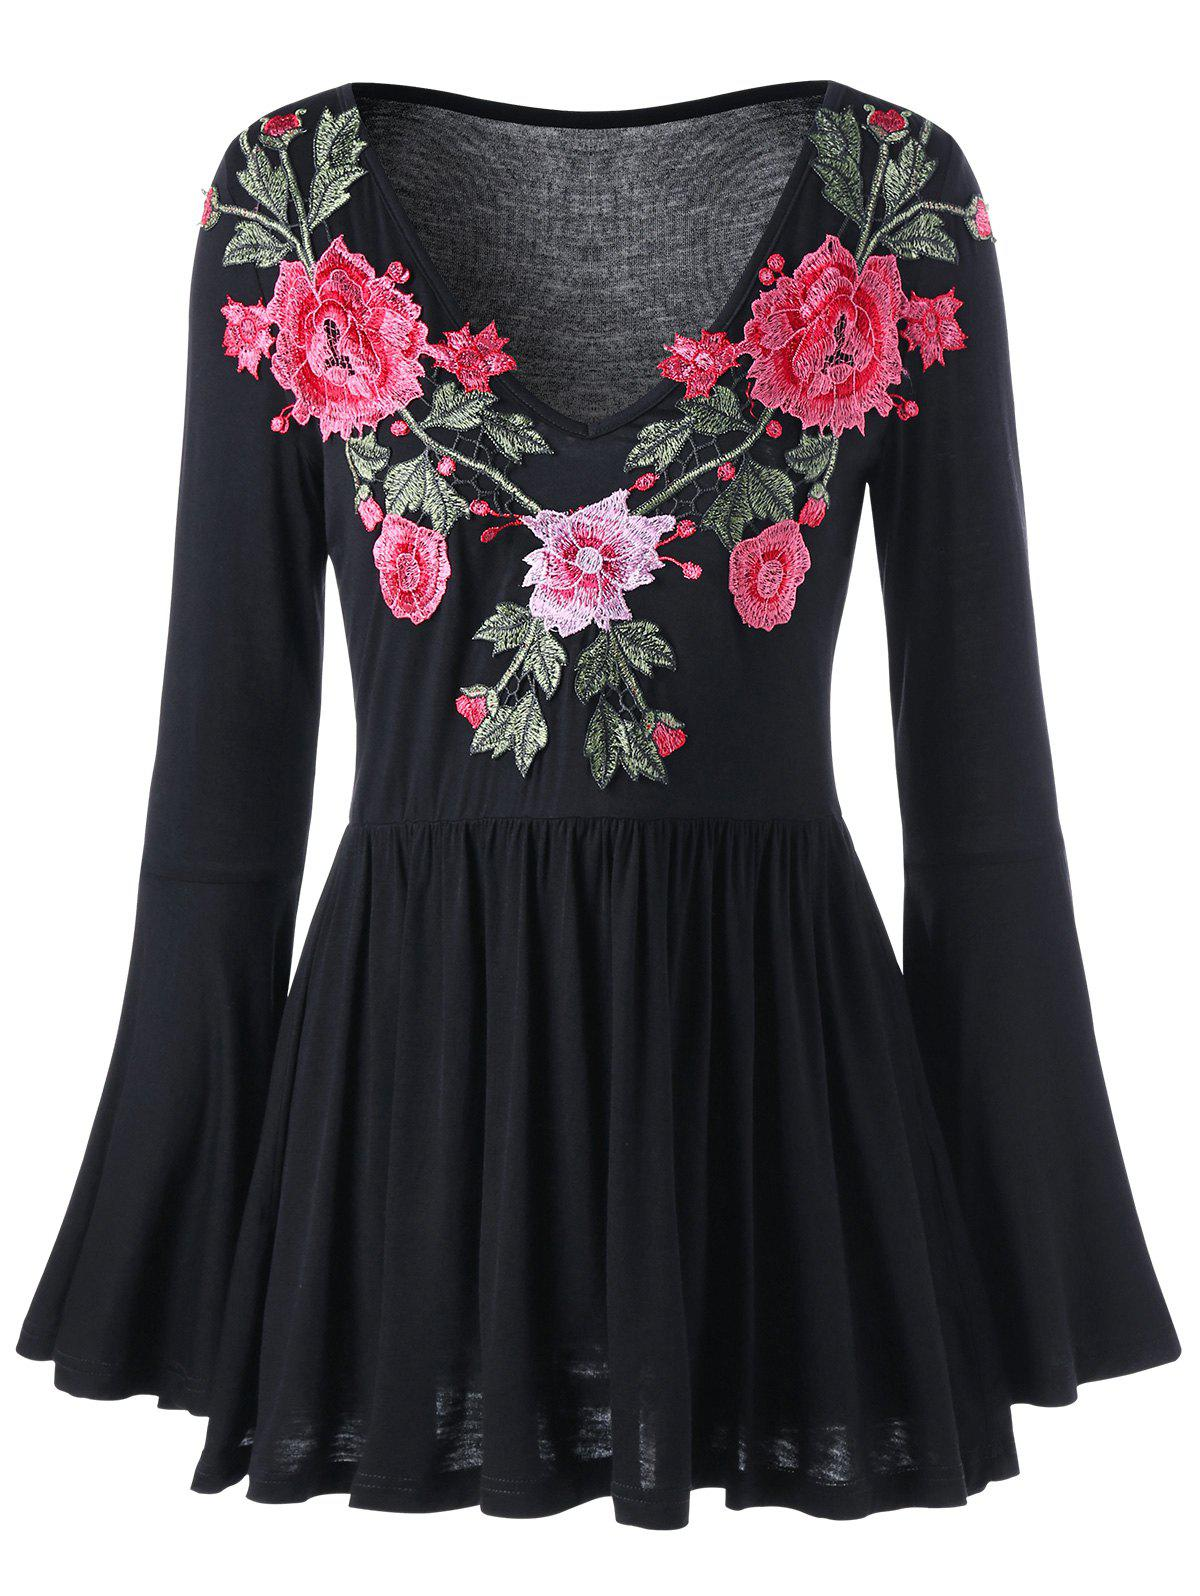 Bell Sleeve Floral Embroidered Peplum Blouse - BLACK 2XL